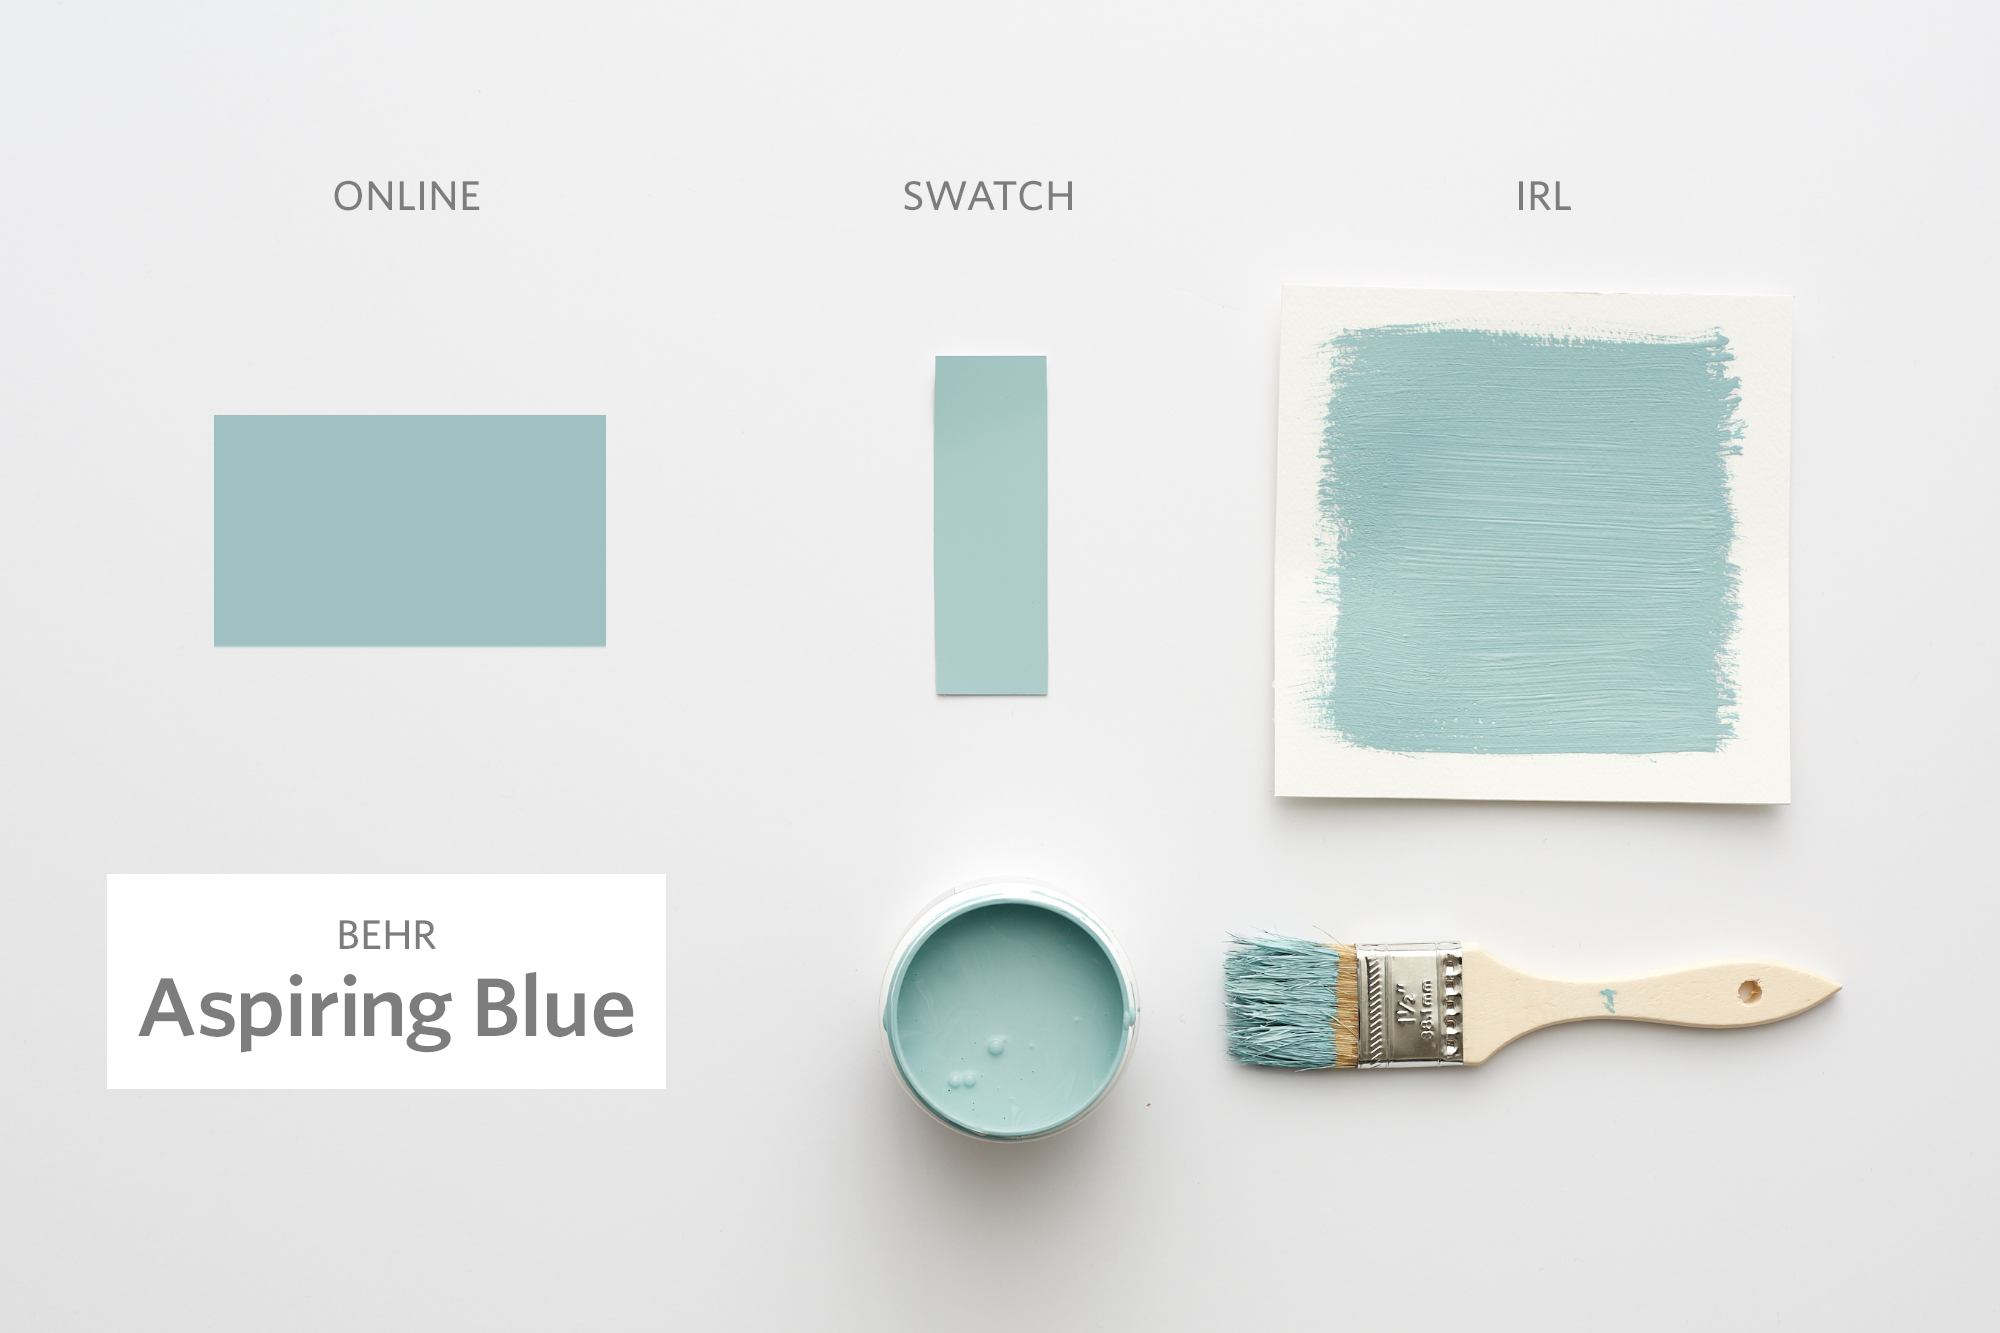 21 Best Blue Paint Colors For Interior Walls Apartment Therapy,Medium Mocha Chocolate Brown Hair Color